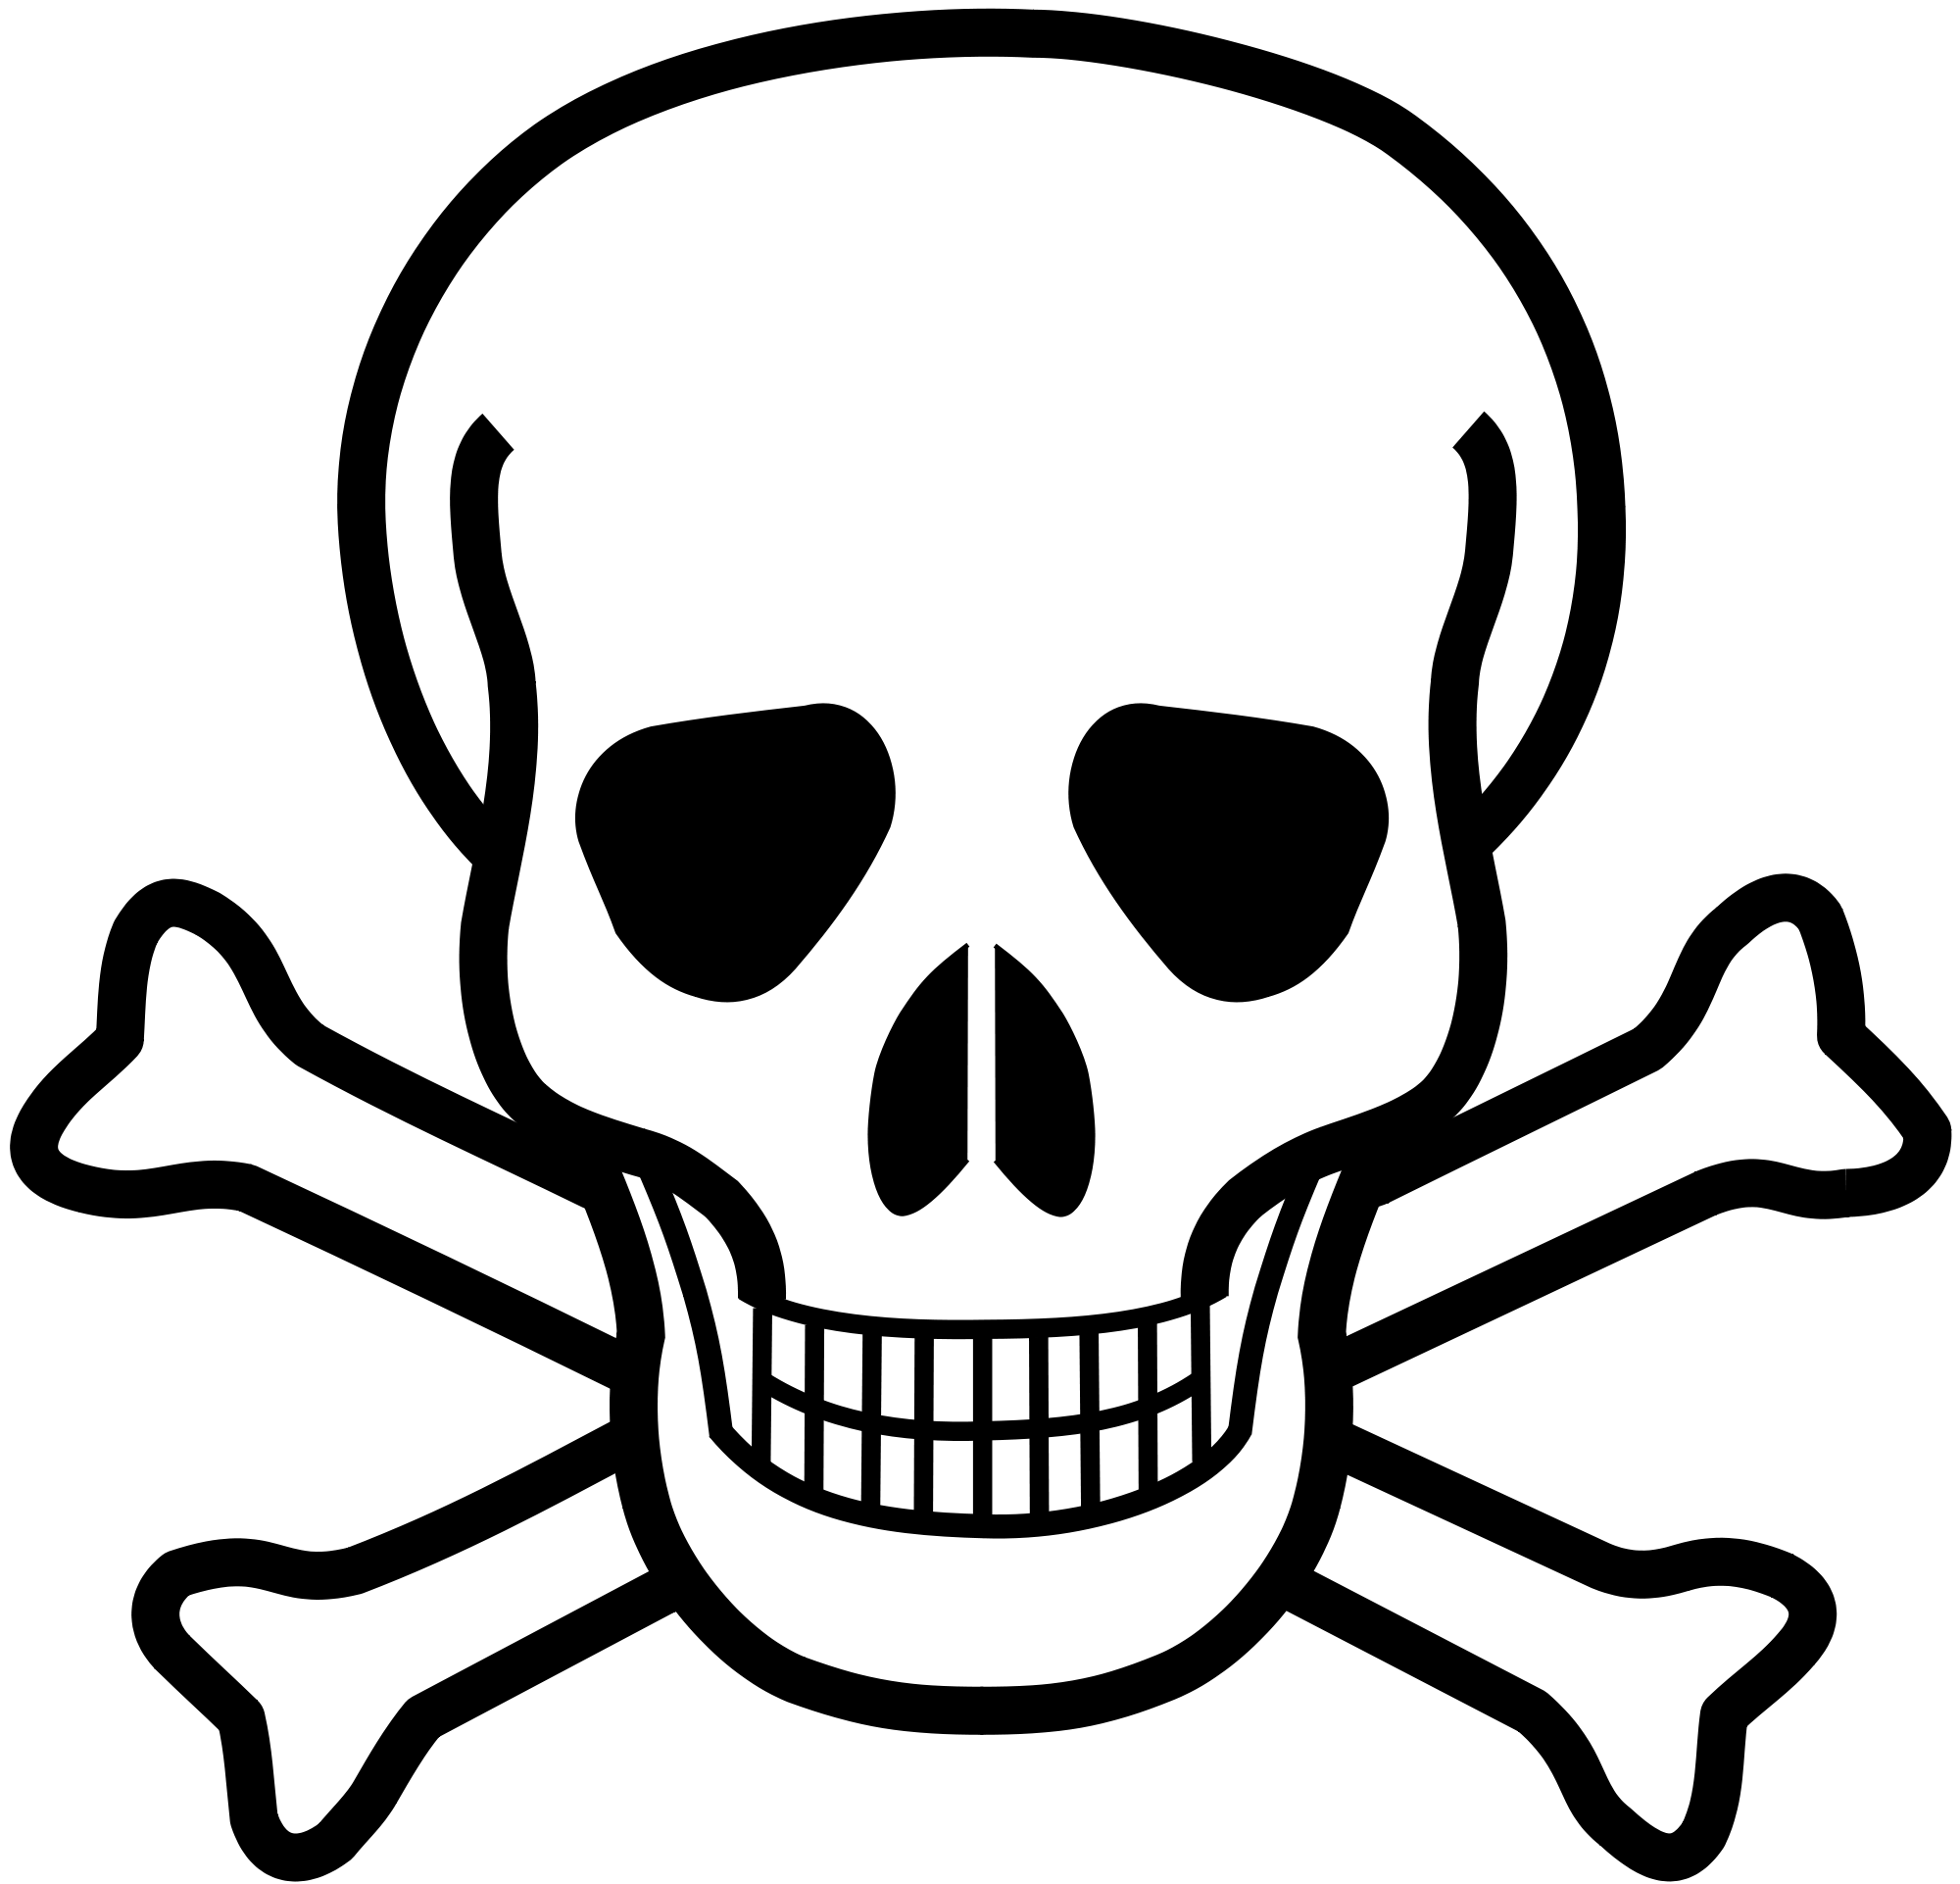 Rip drawing skull. Poison and crossbones free